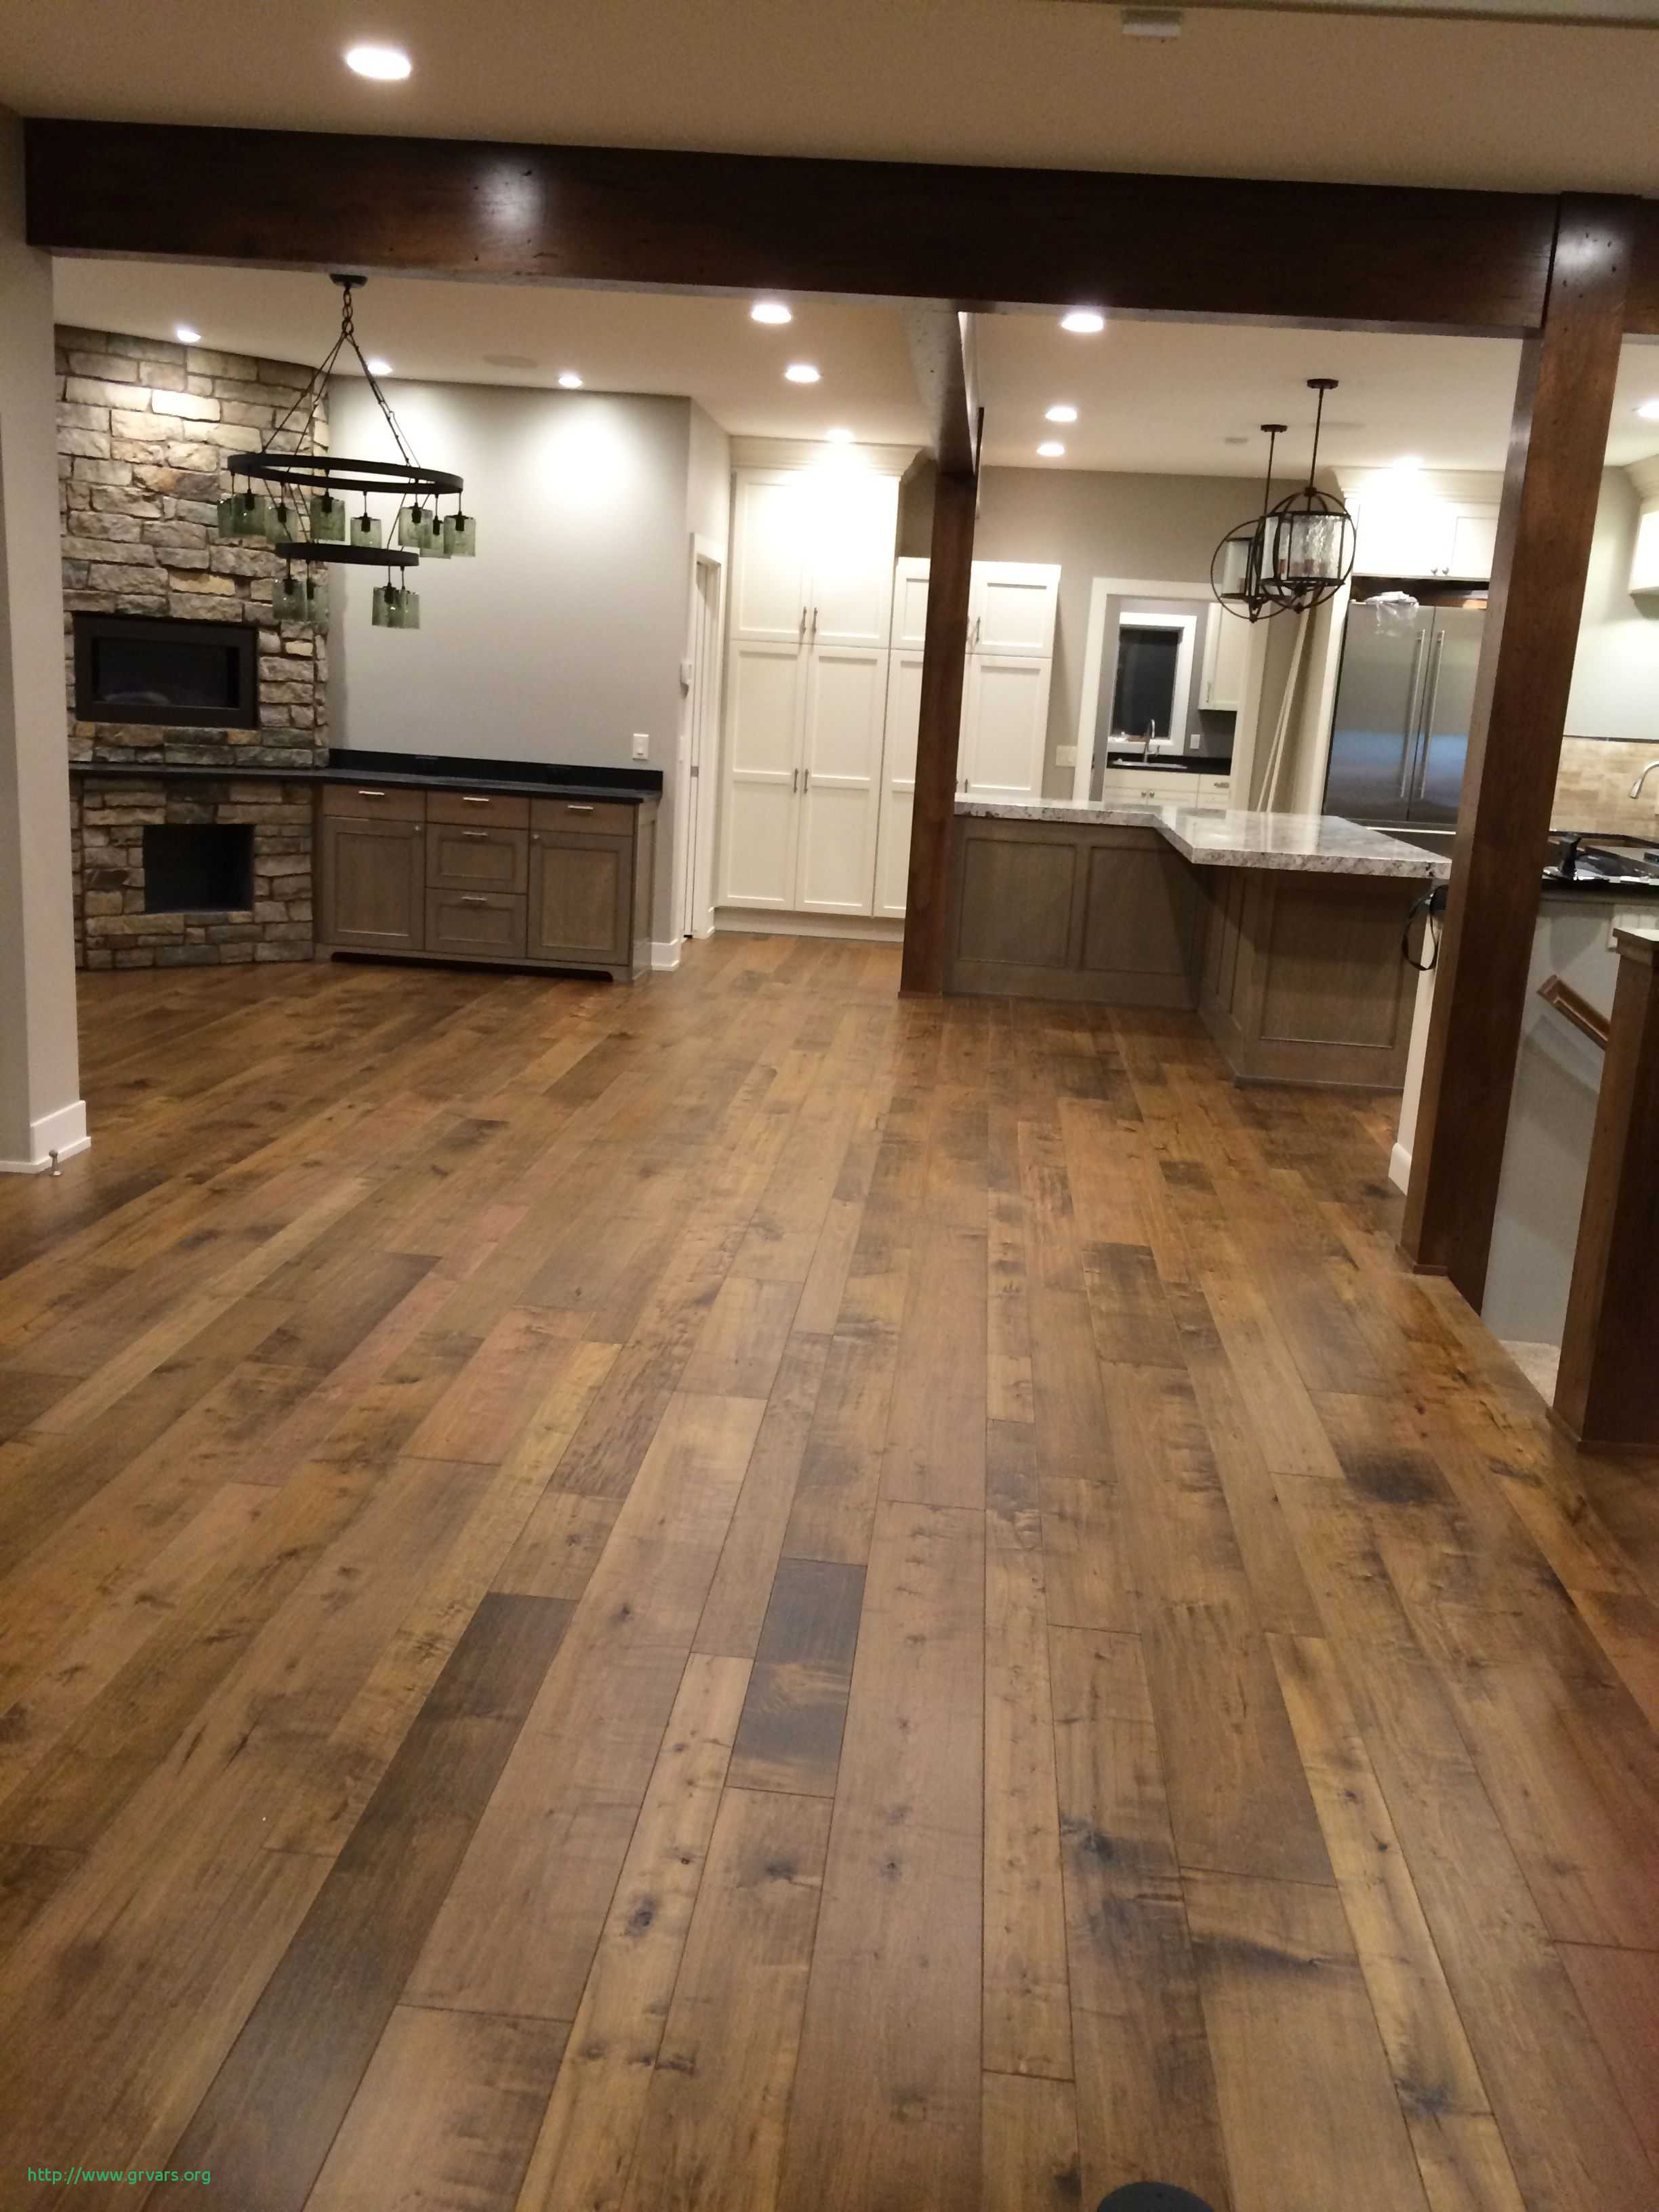 engineered hardwood flooring reviews 2017 of 18 frais quality flooring 4 less reviews ideas blog inside the floors were purchased from carpets direct and installed by fulton construction engineered hardwood flooring collection